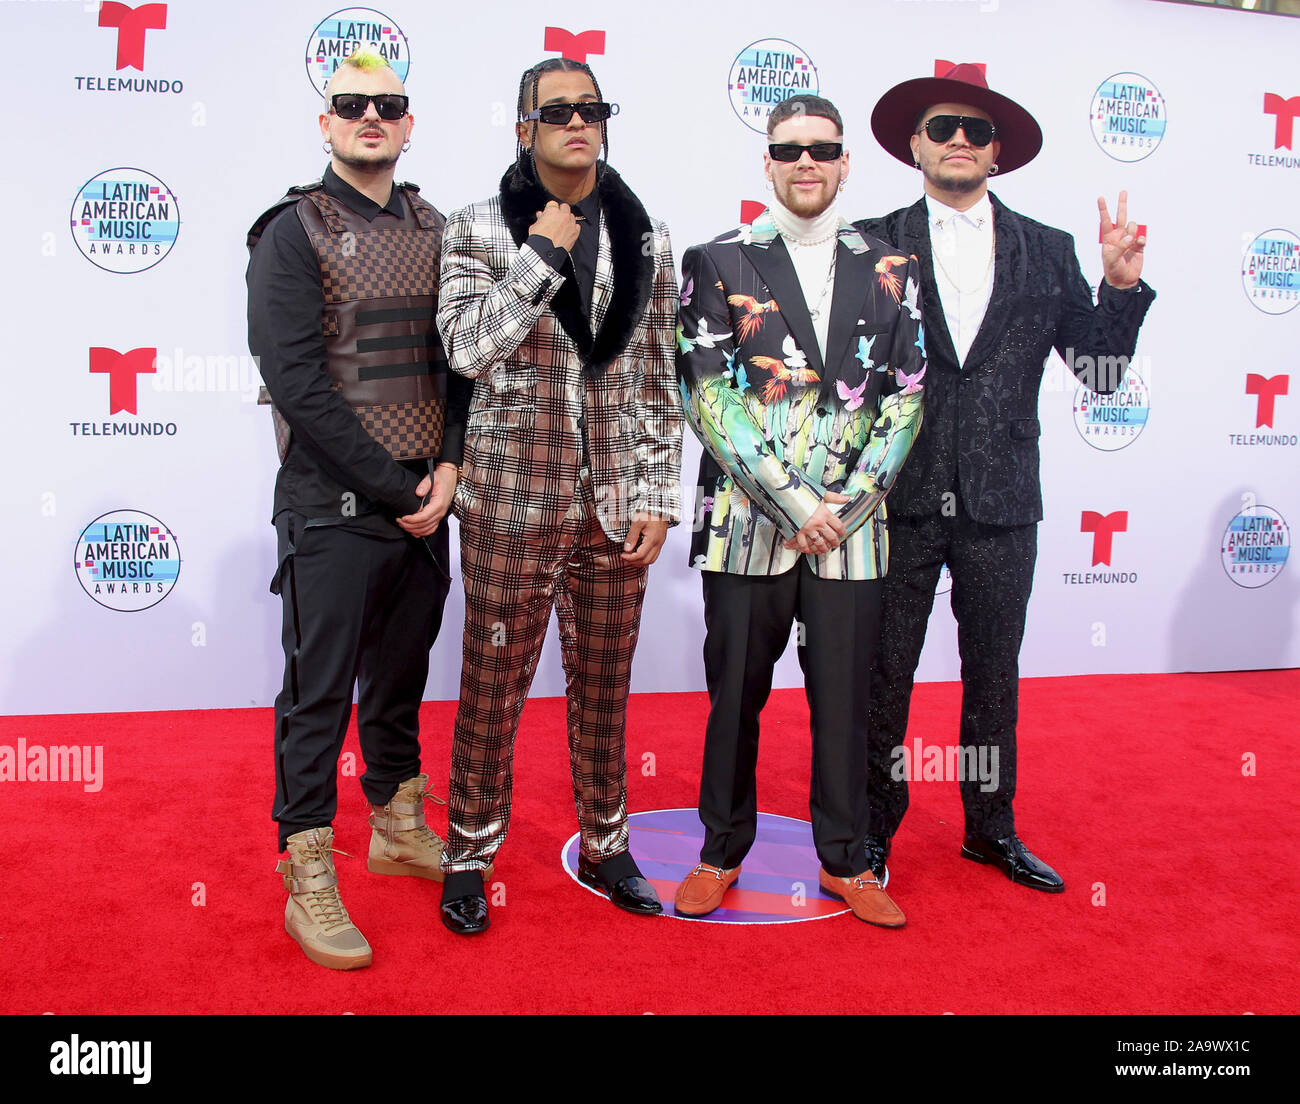 Latin American Music Awards 2019 held at the Dolby Theatre in Hollywood, California. Featuring: Piso 21 Where: Los Angeles, California, United States When: 17 Oct 2019 Credit: Adriana M. Barraza/WENN.com Stock Photo